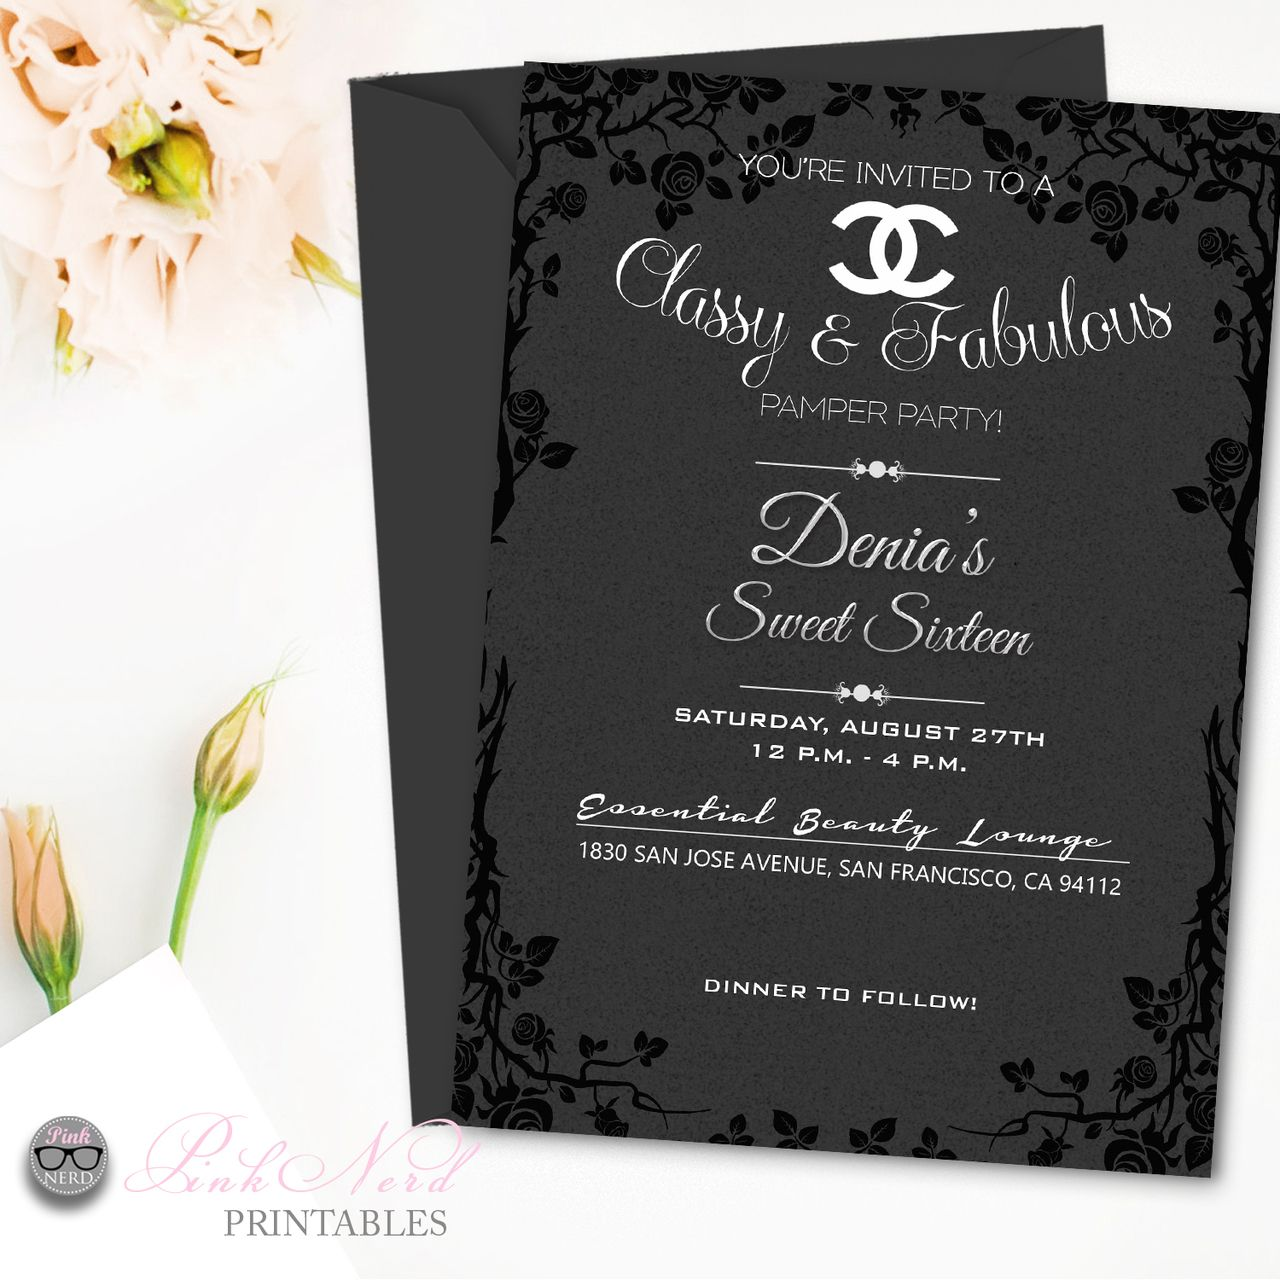 bridal shower invitation pictures%0A Black and gray chanel inspired birthday invitation printable chanel floral  invitation black elegant Chanel Inspired Party  Chanel Bridal ShowerBridal